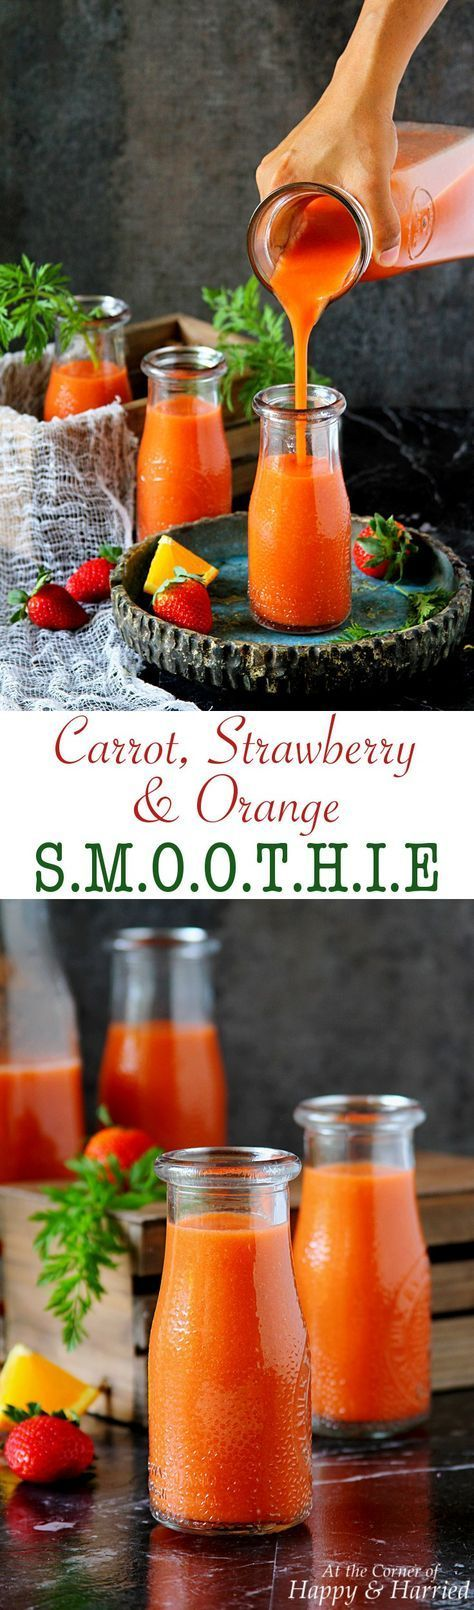 CARROT, STRAWBERRY & ORANGE SMOOTHIE - HAPPY&HARRIED. Get your daily dose of vitamins with this colorful, healthy and delicious carrot-strawberry-orange smoothie! #happyandharried #smoothie #carrot #strawberry #orange #recipe